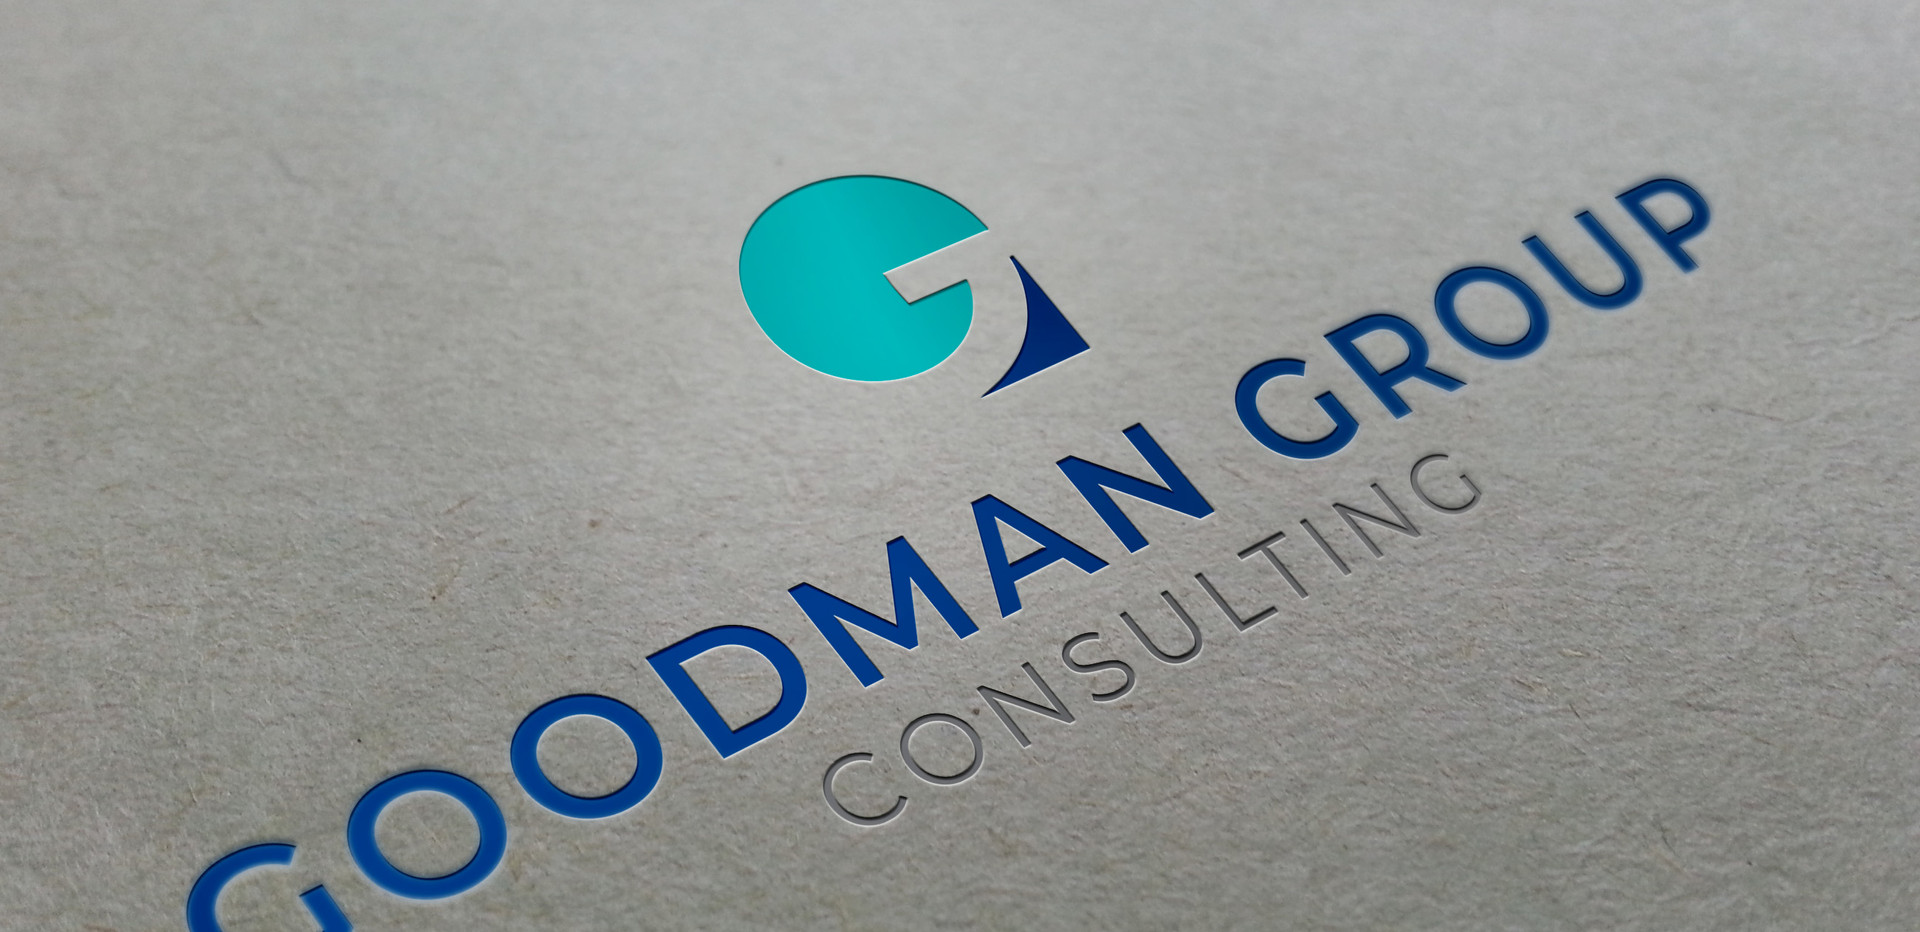 Goodman Group Consulting